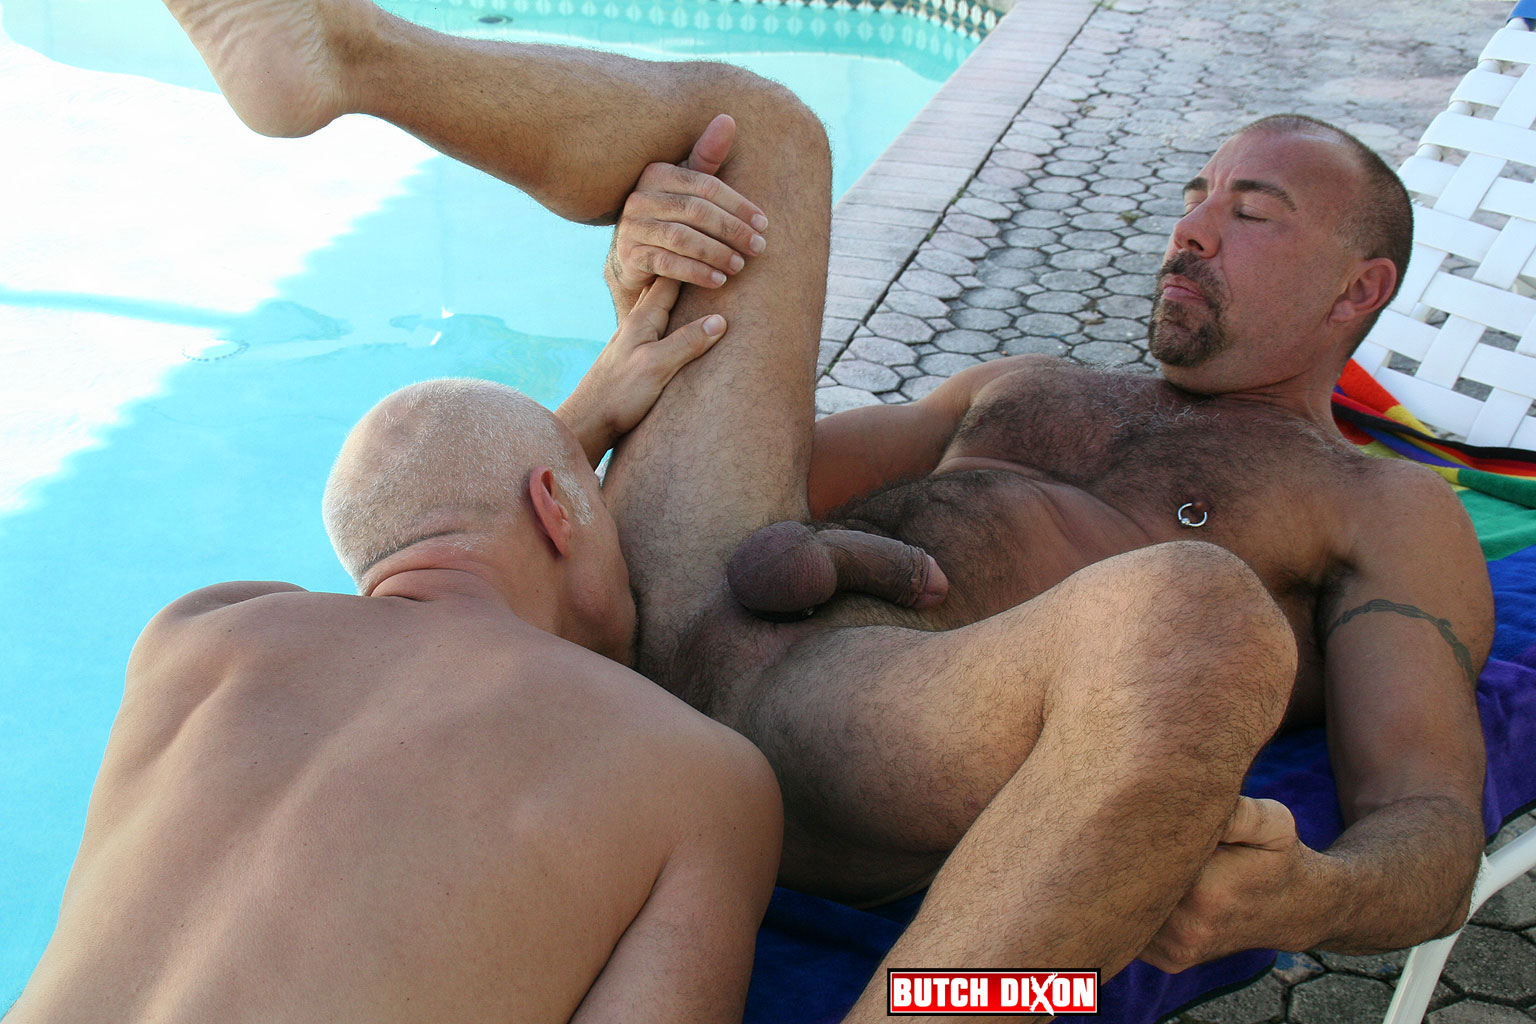 Butch-Dixon-Max-Dunhill-and-Jason-Proud-Hairy-Daddies-Fucking-With-Big-Cocks-Amateur-Gay-Porn-14 Real Life Hairy Daddy Boyfriends Fucking With Their Big Cocks